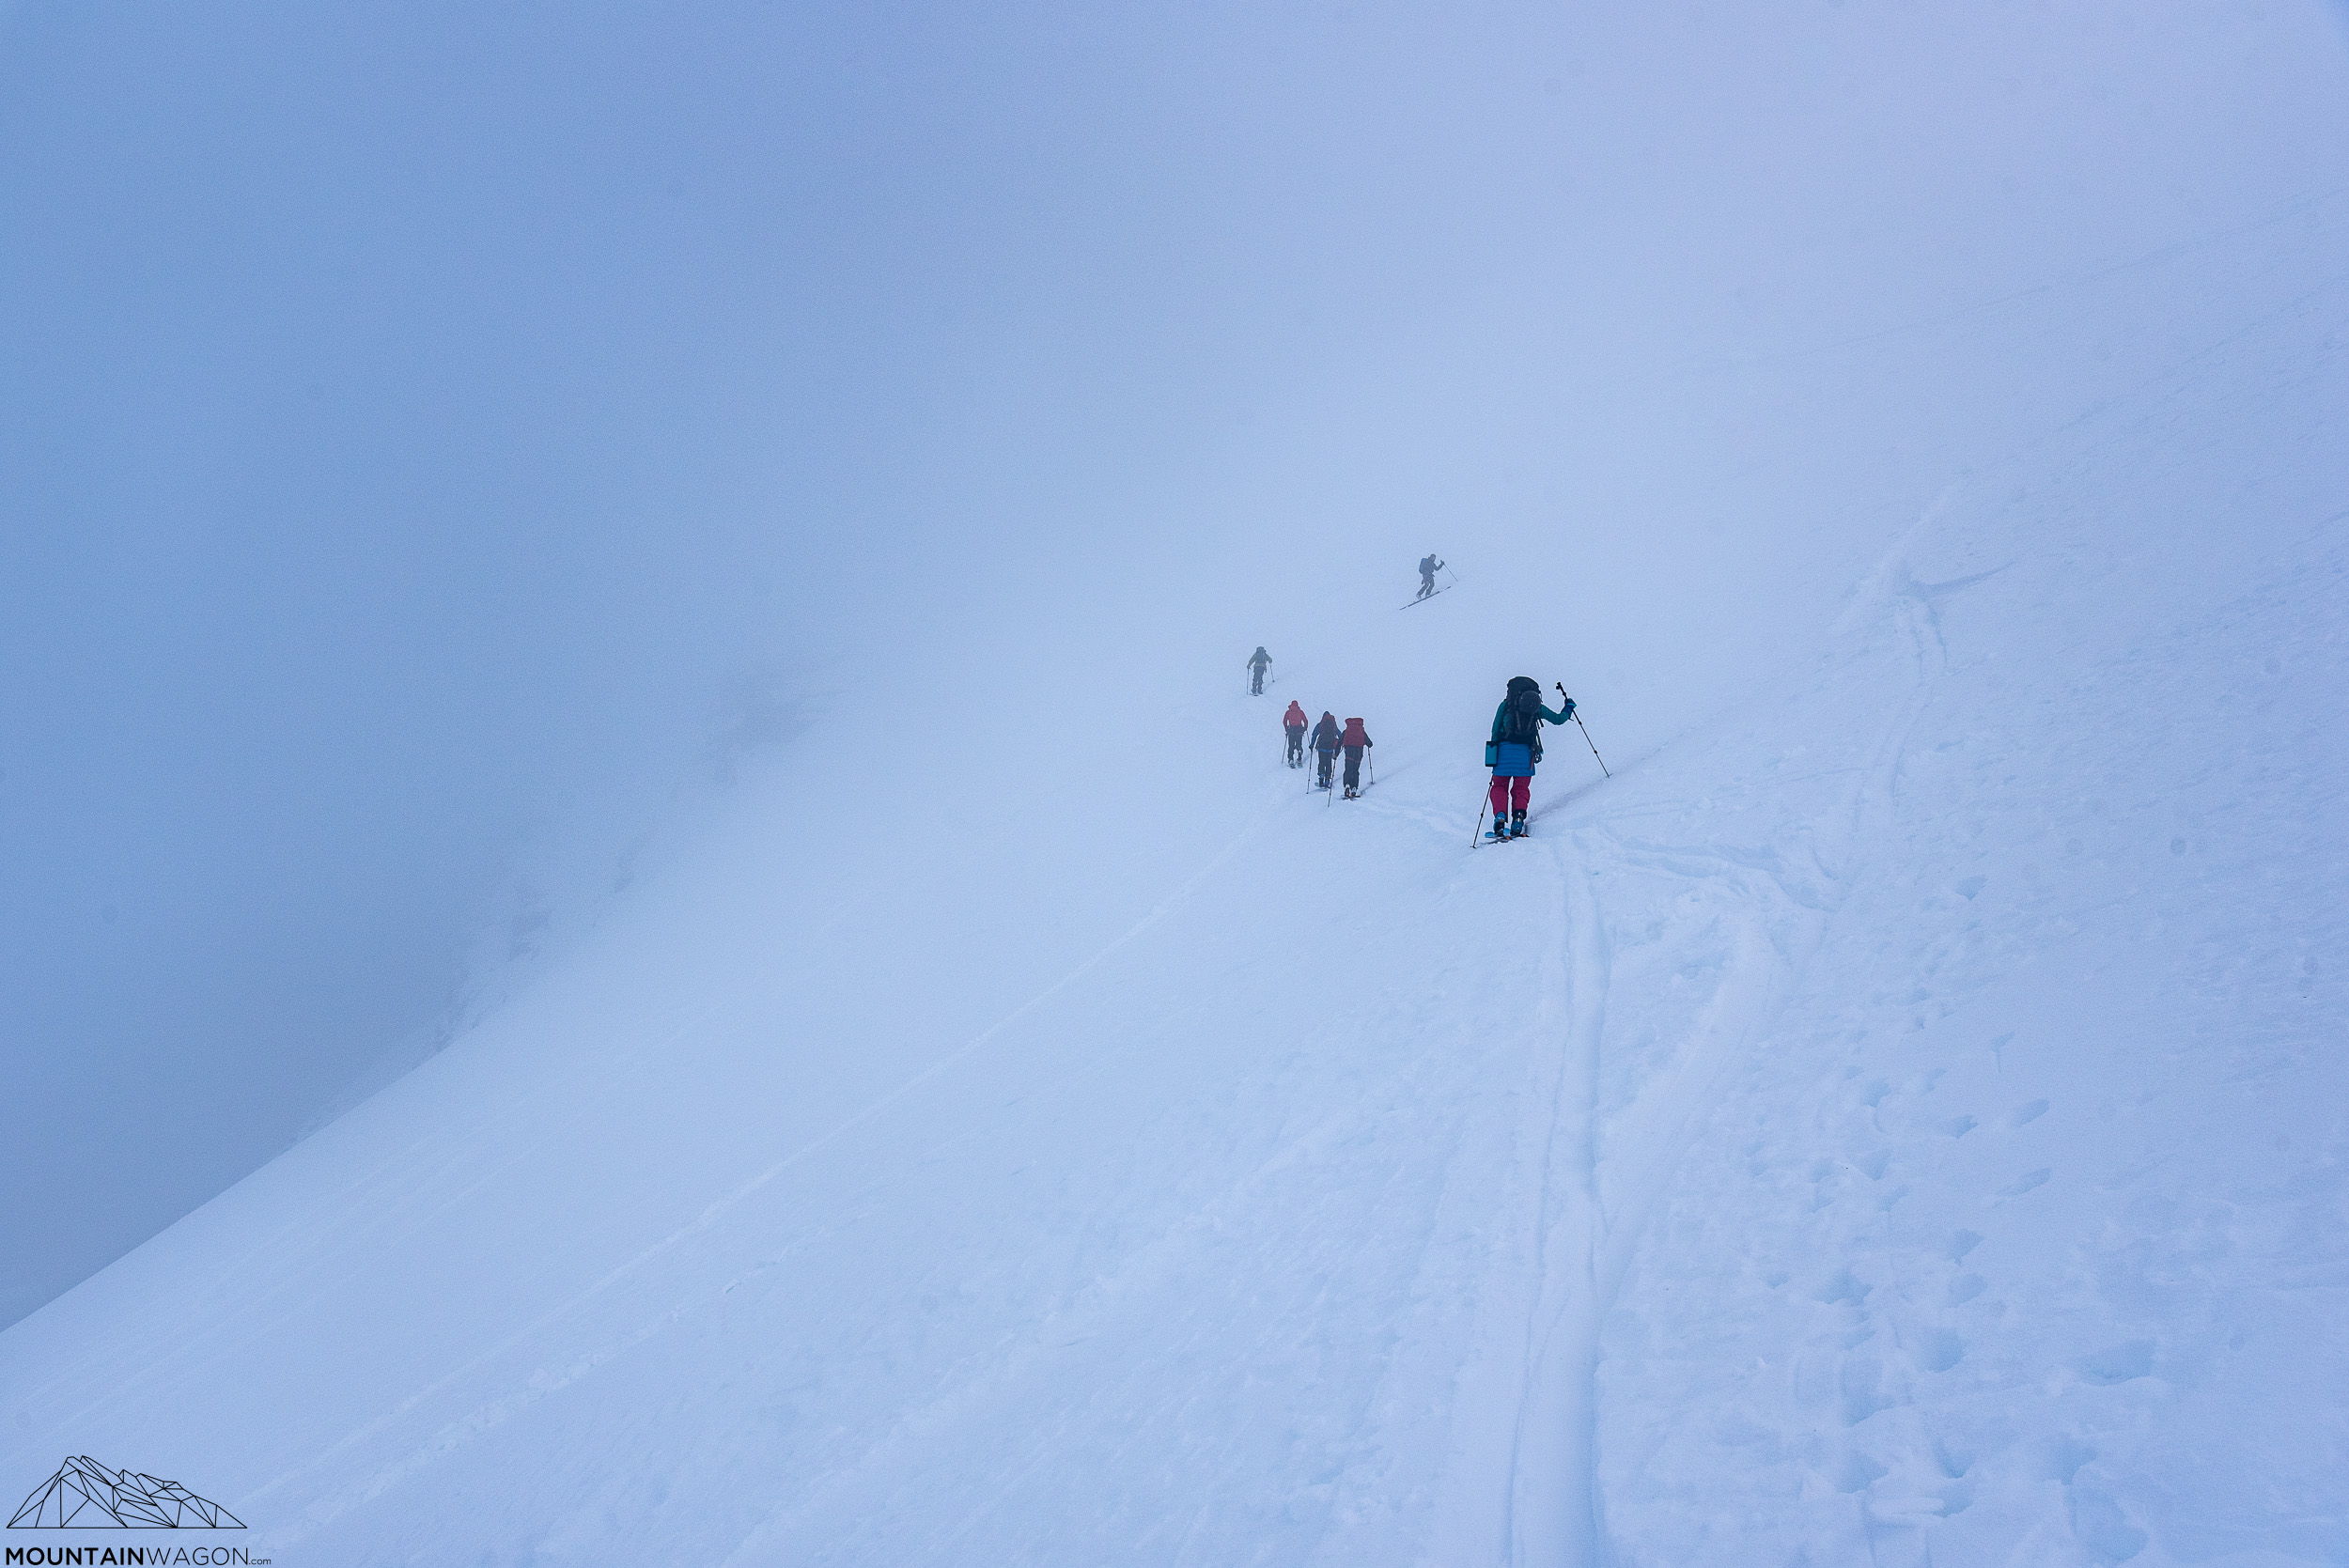 As we approached the summit - the weather got back to normal and socked in